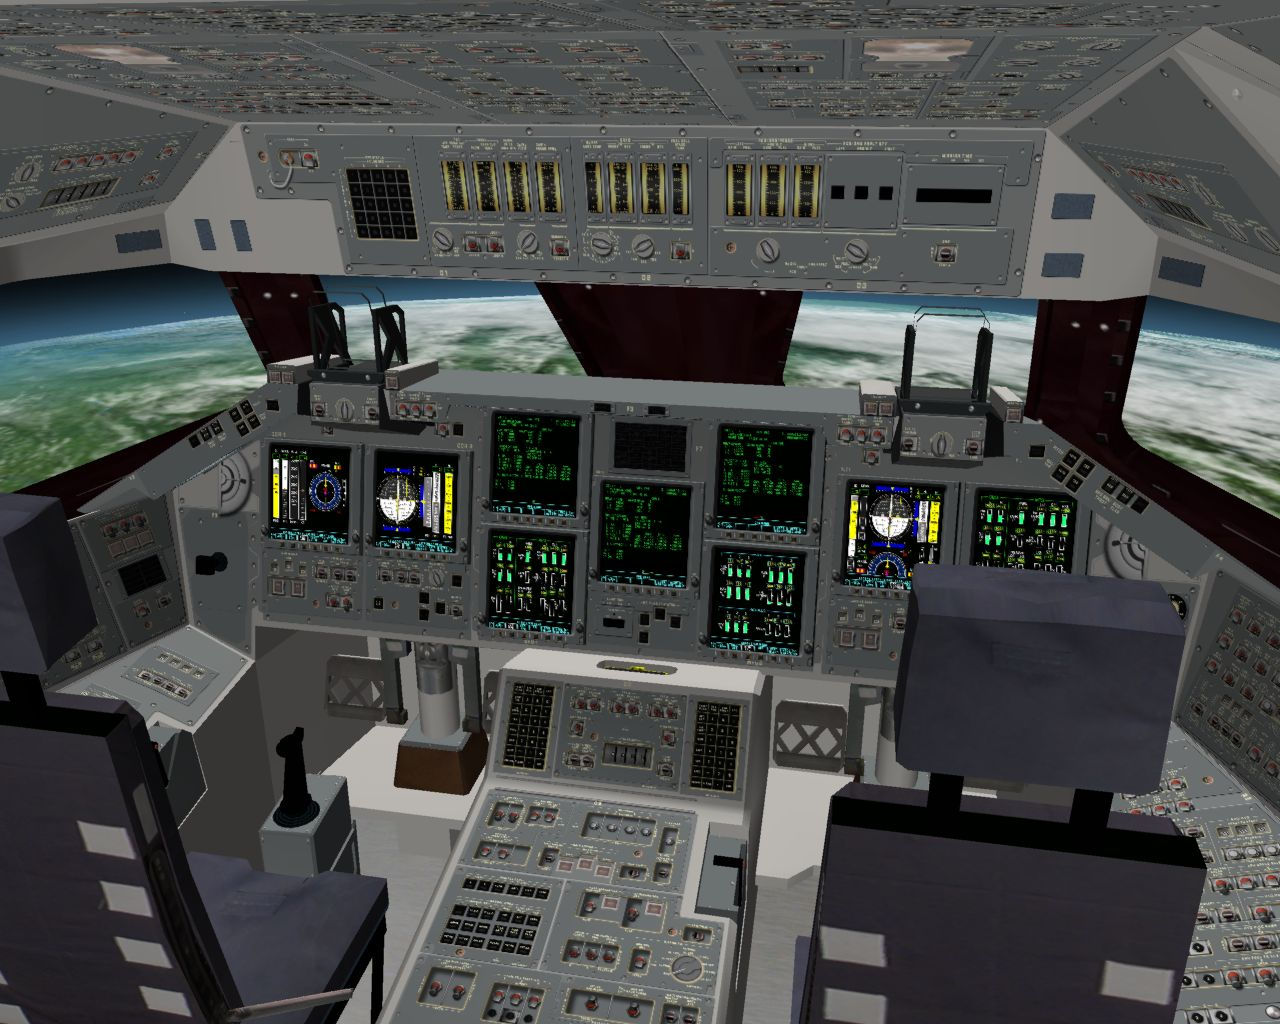 space shuttle simulator 2010 - photo #2